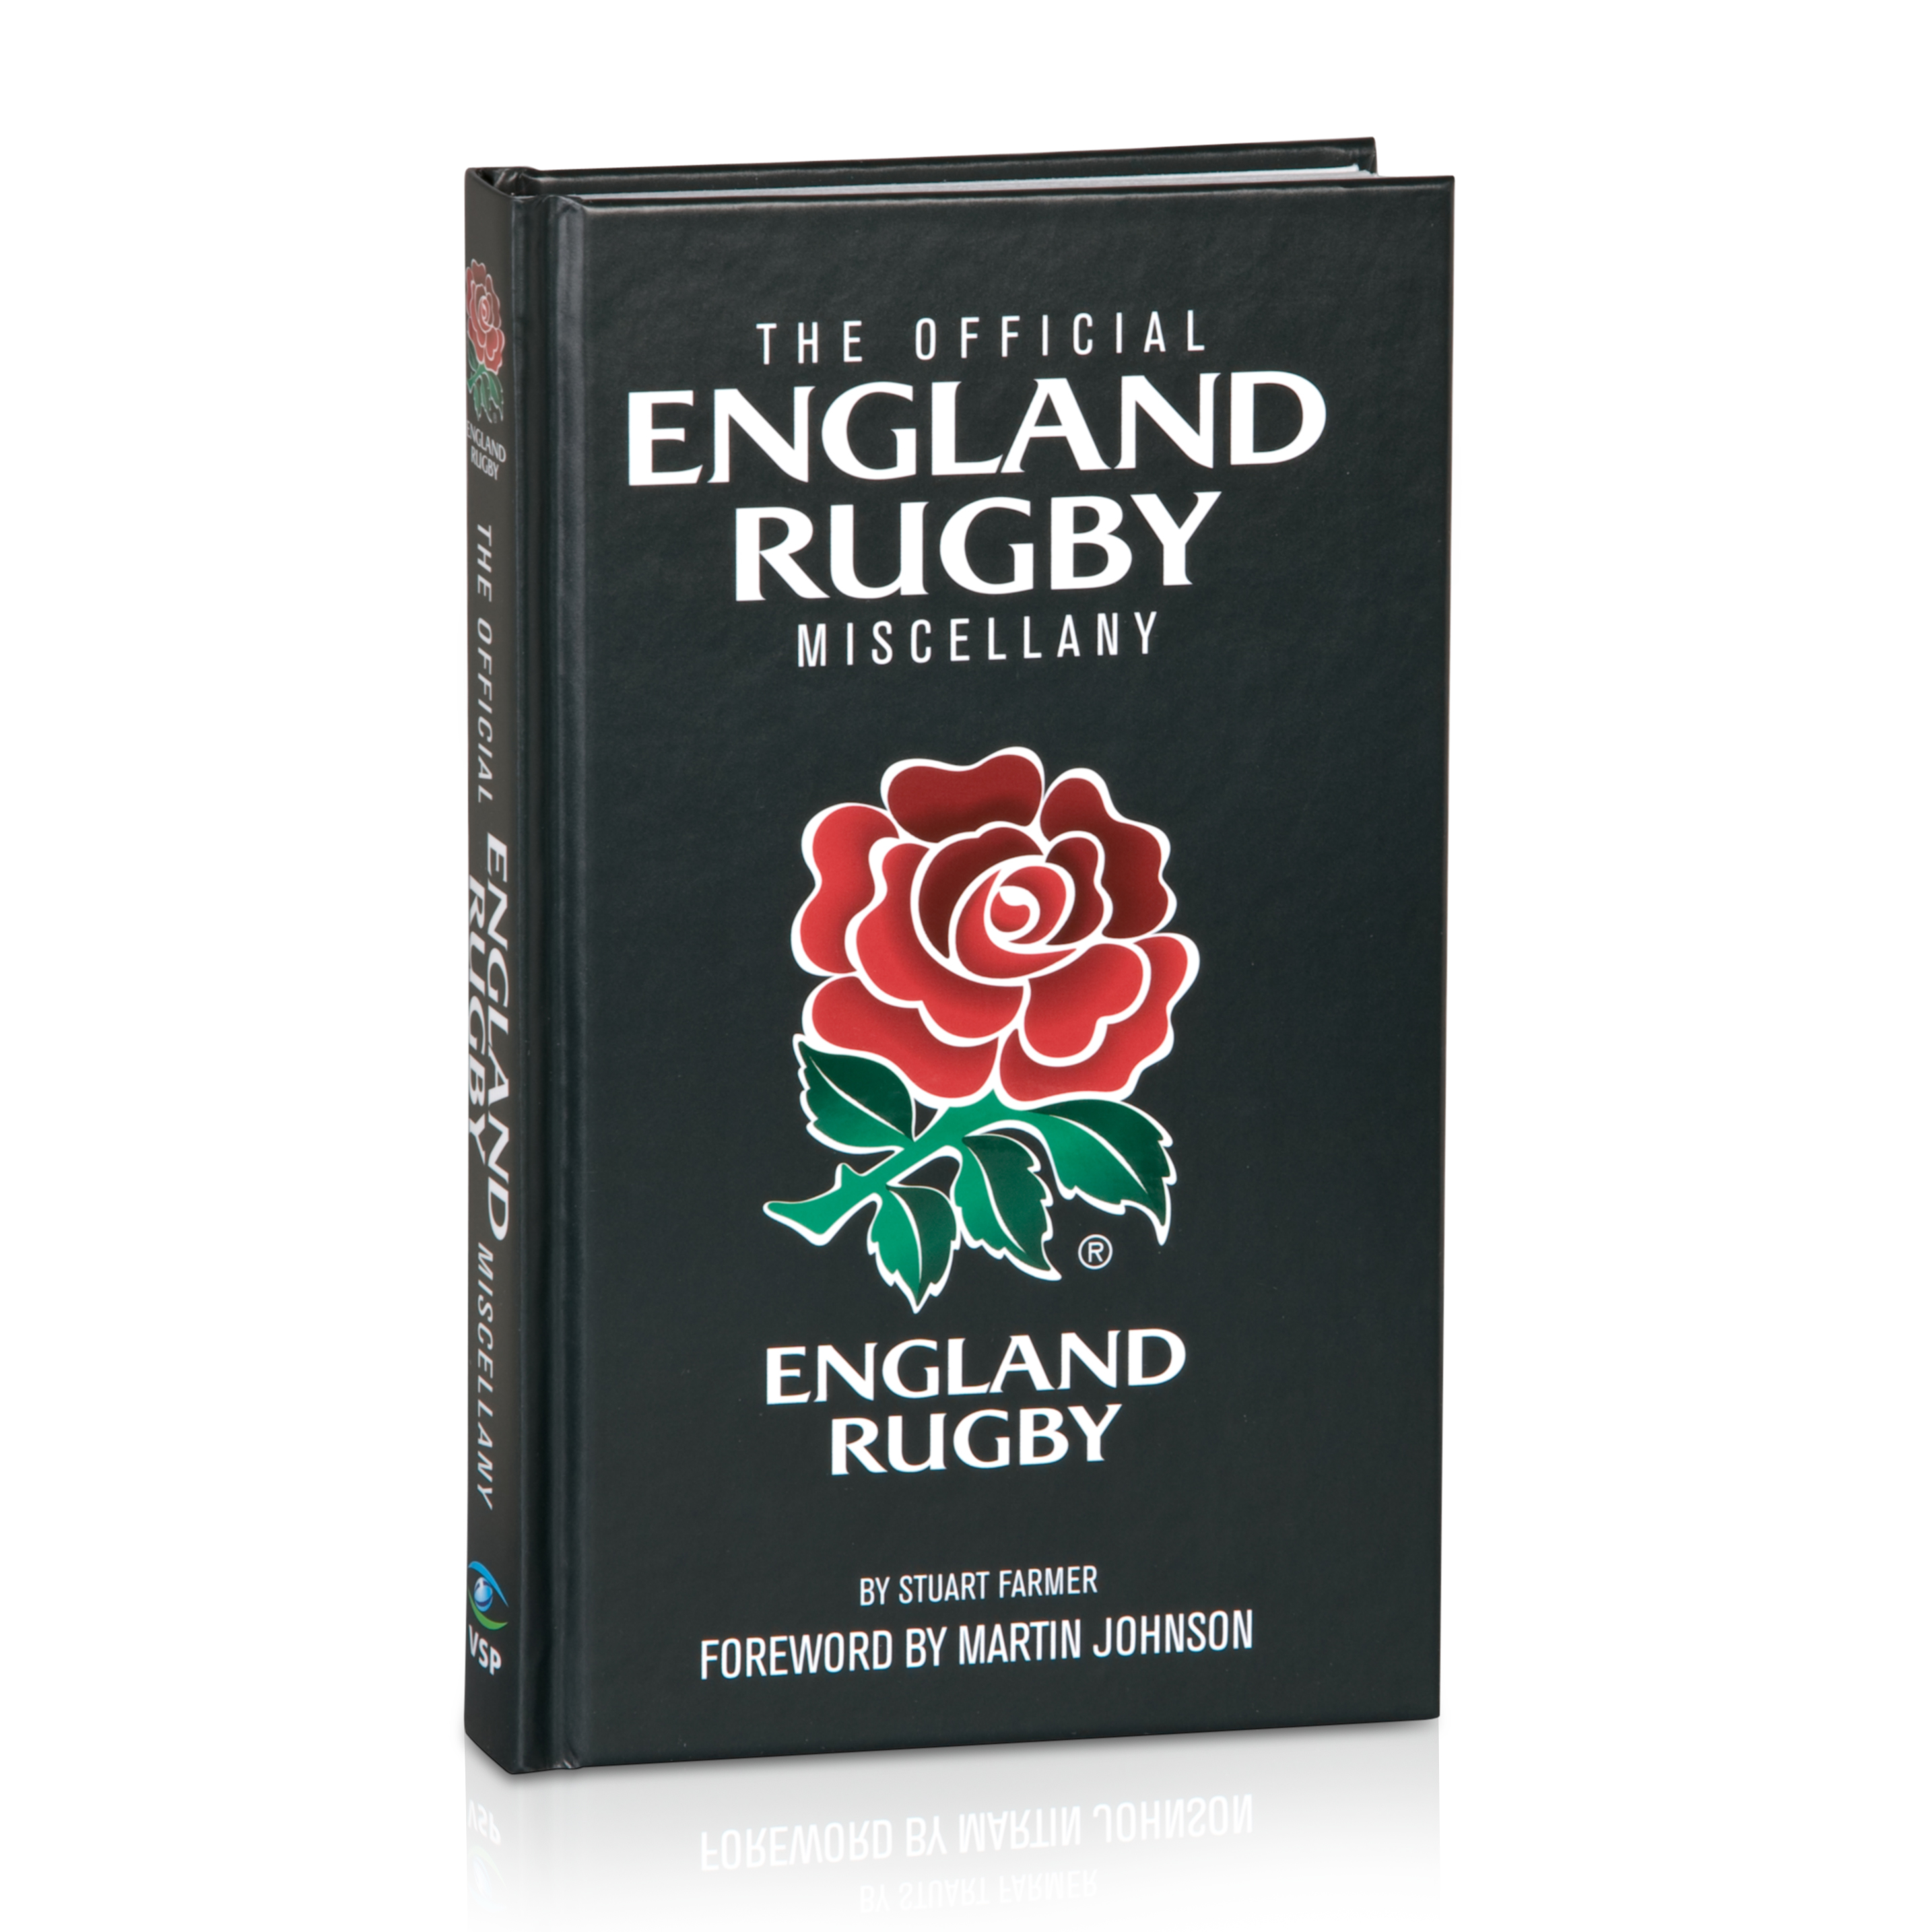 The Official England Rugby Miscellany - Brand New Edition